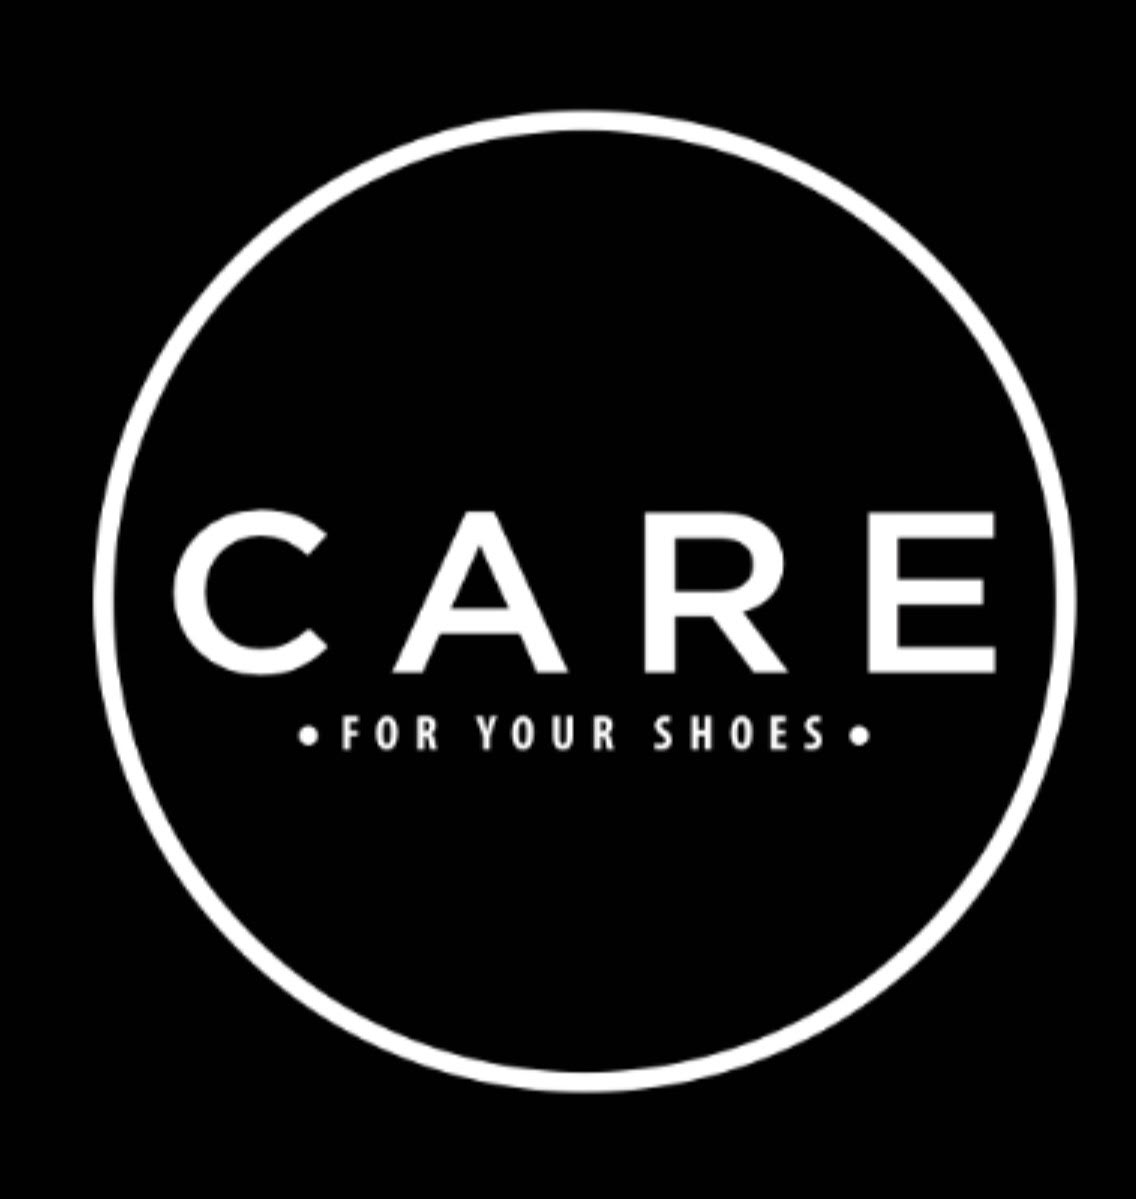 Care Shoe Cleaner Coupons and Promo Code